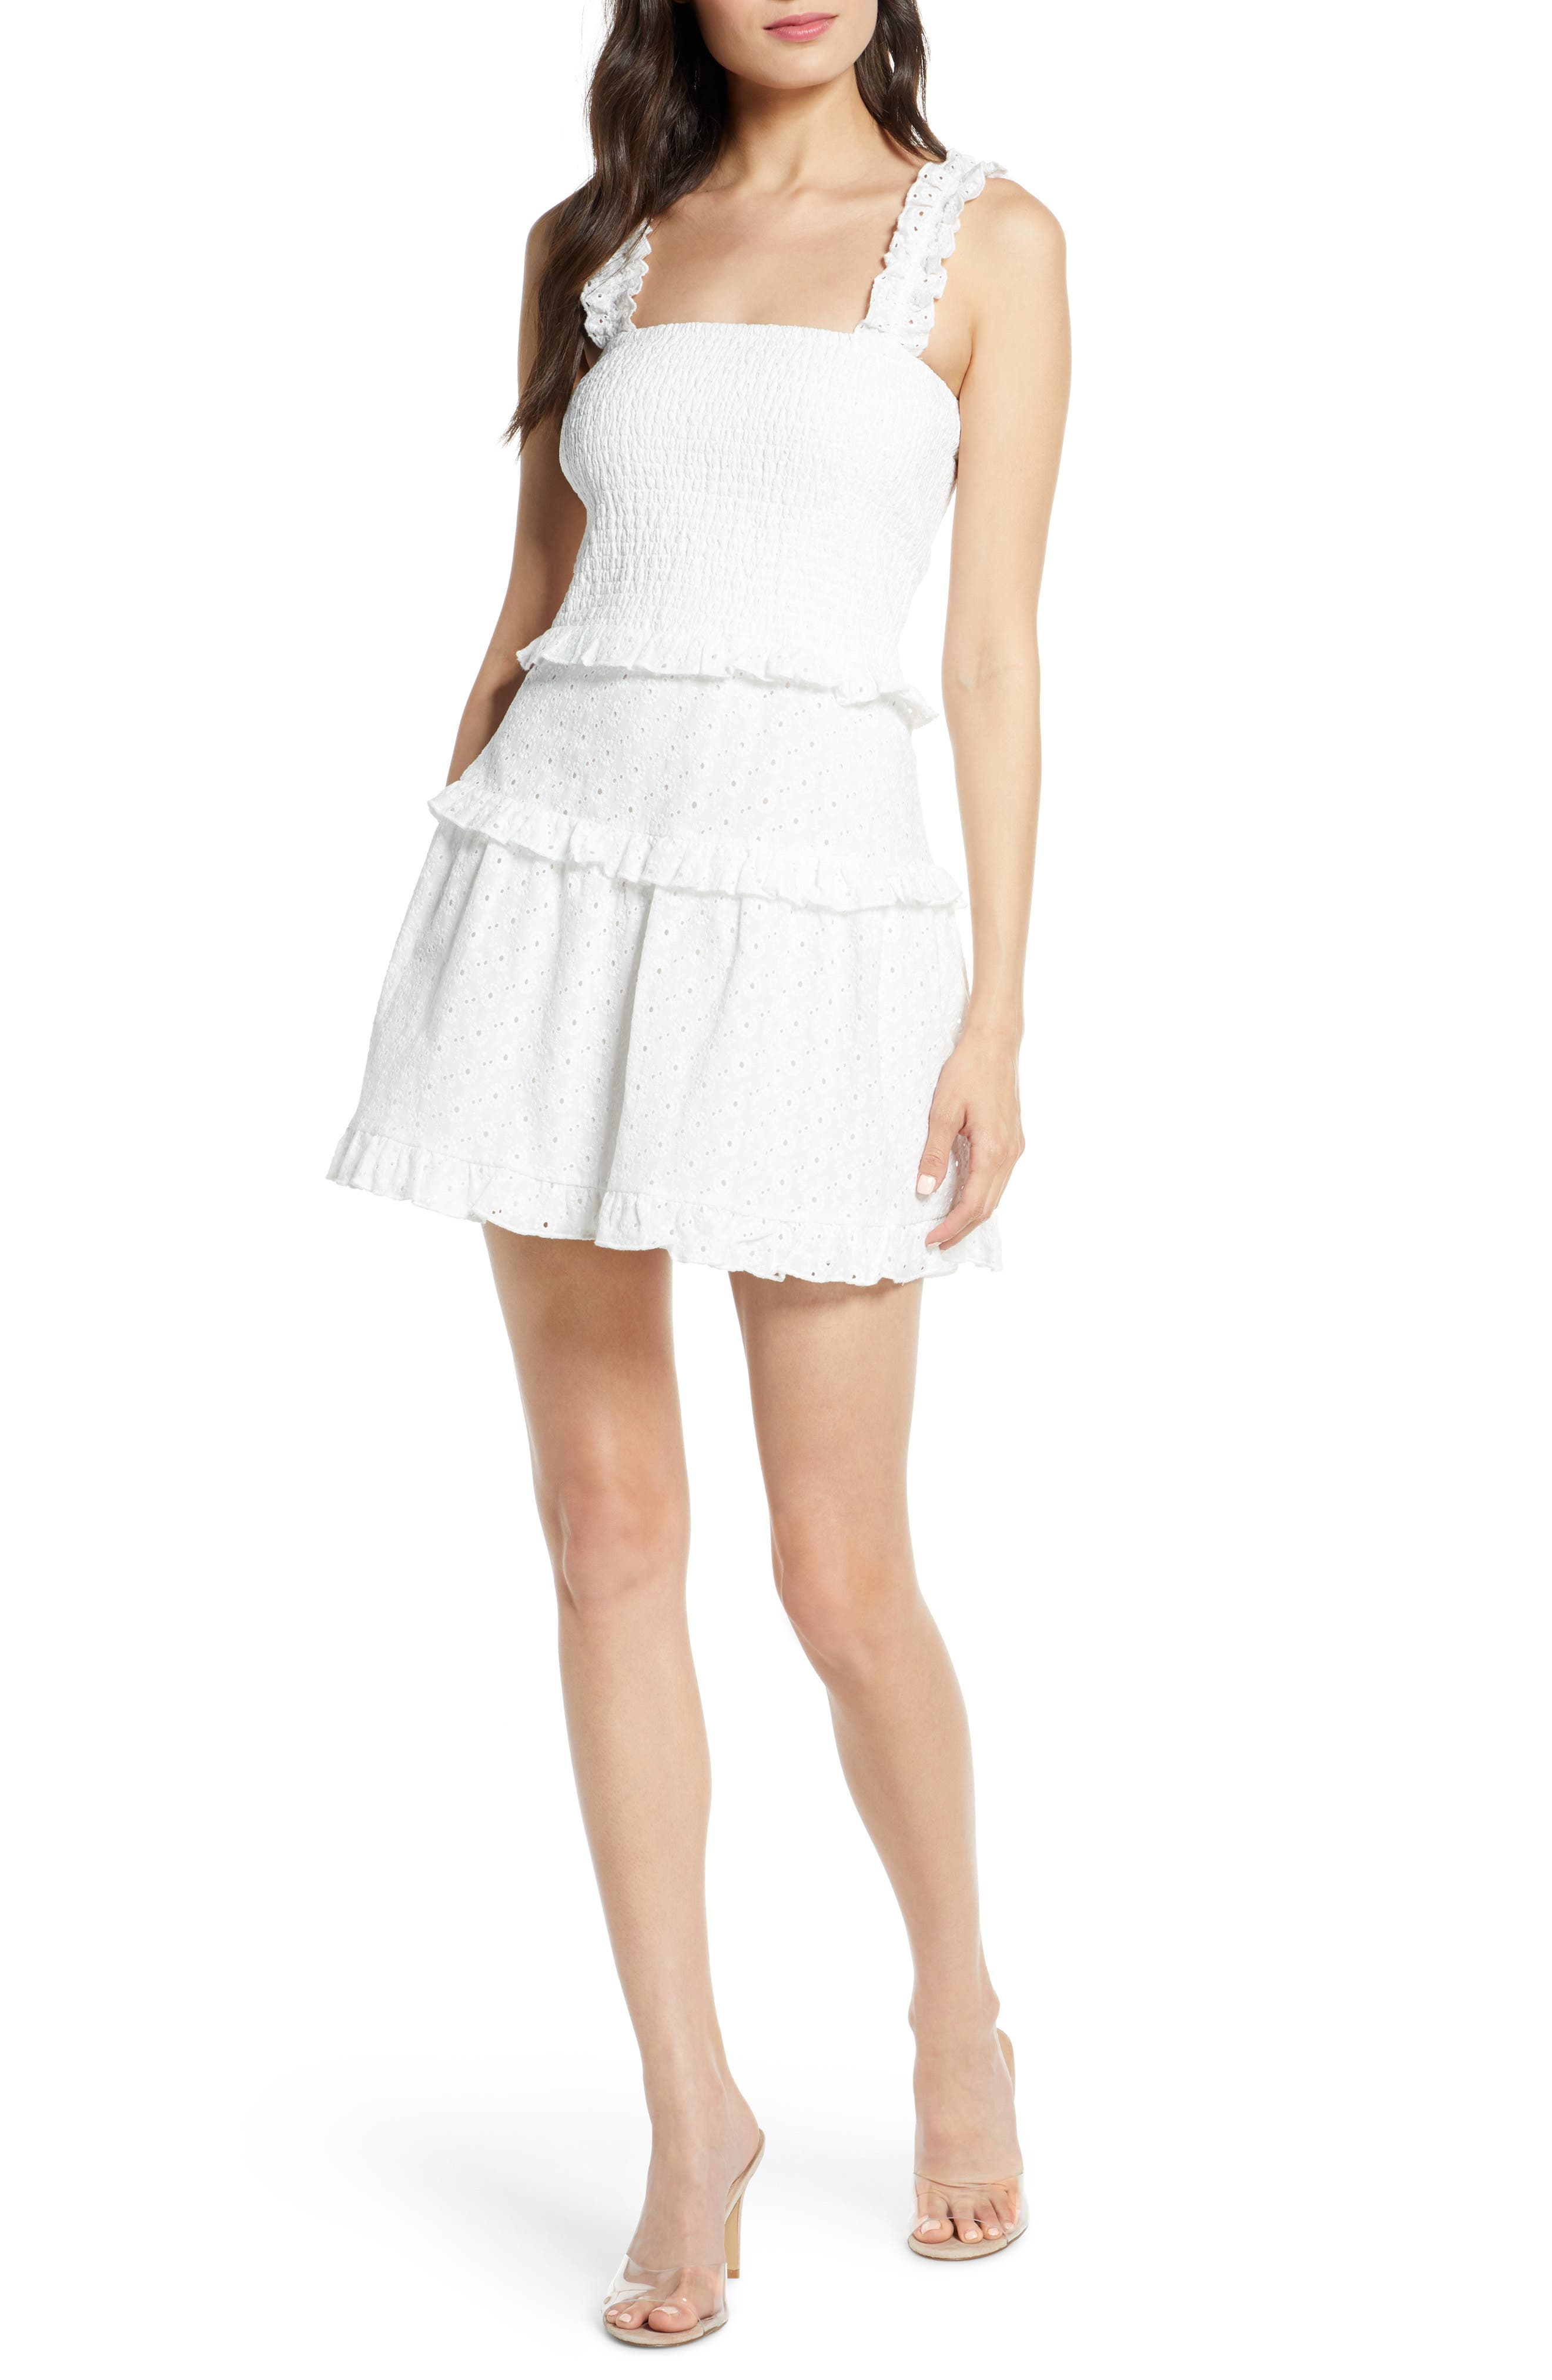 Ali & Jay Treasure Hunting Broderie Anglaise Sundress, White